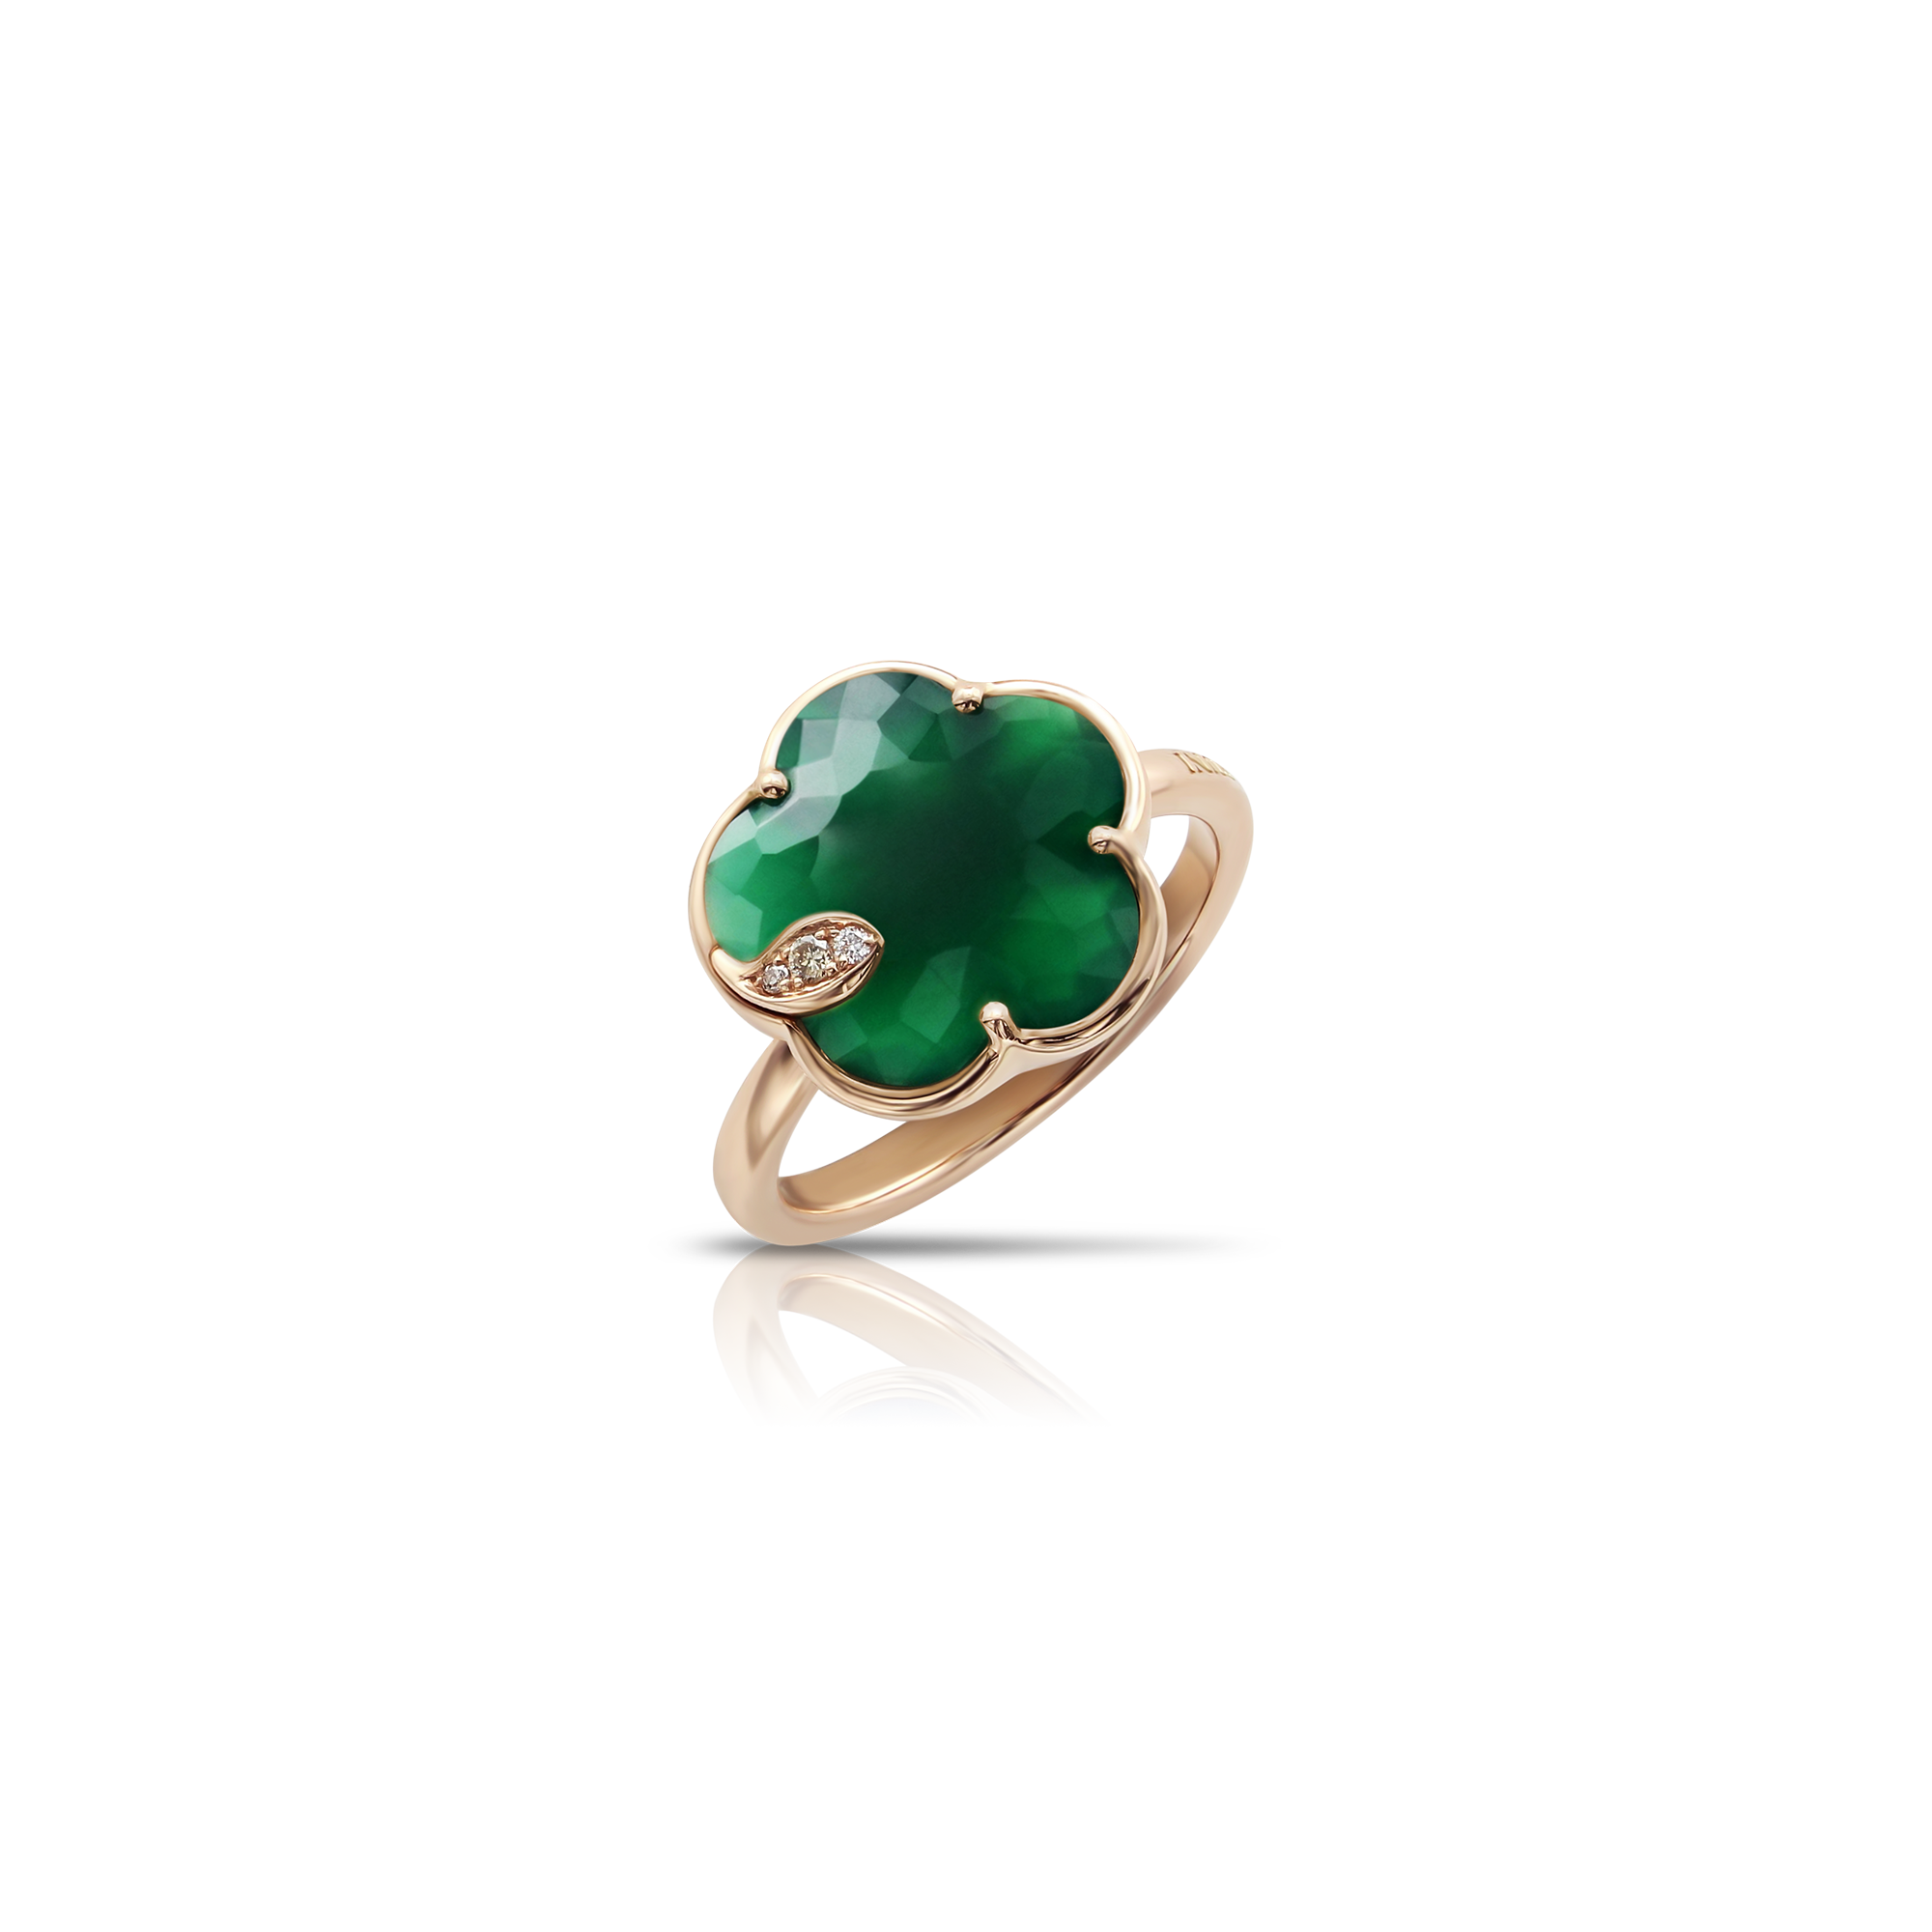 18k Rose Gold Petit Joli Ring with Green Agate, White and Champagne Diamonds